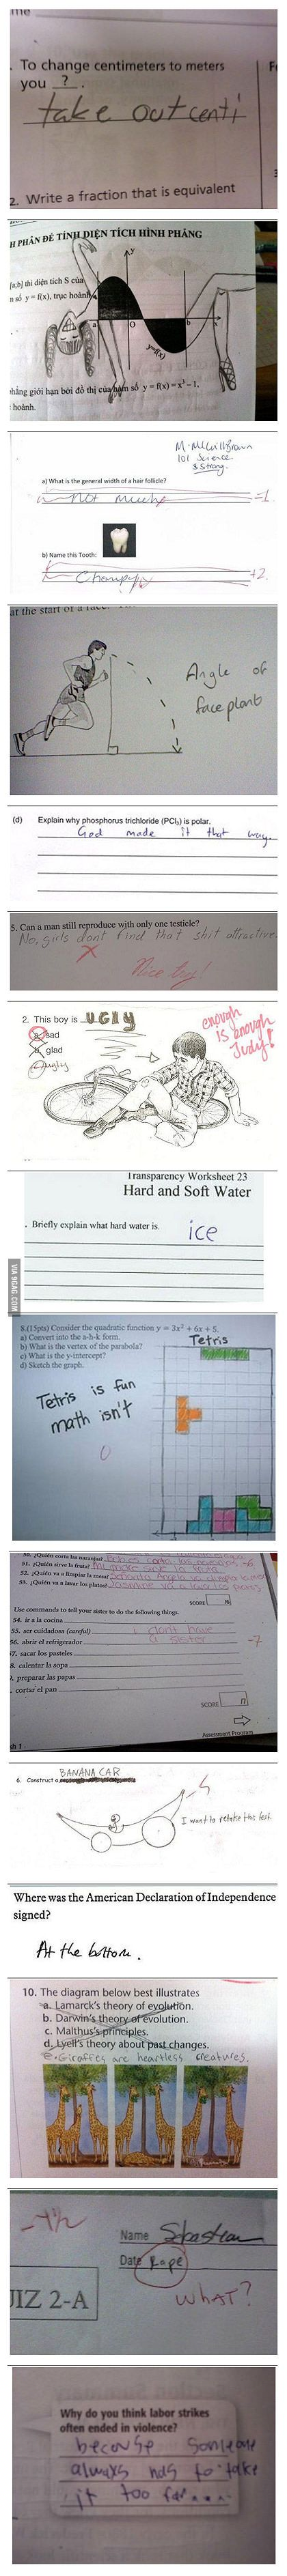 Some funny exam answers! {Tetris & the giraffes! Lol}